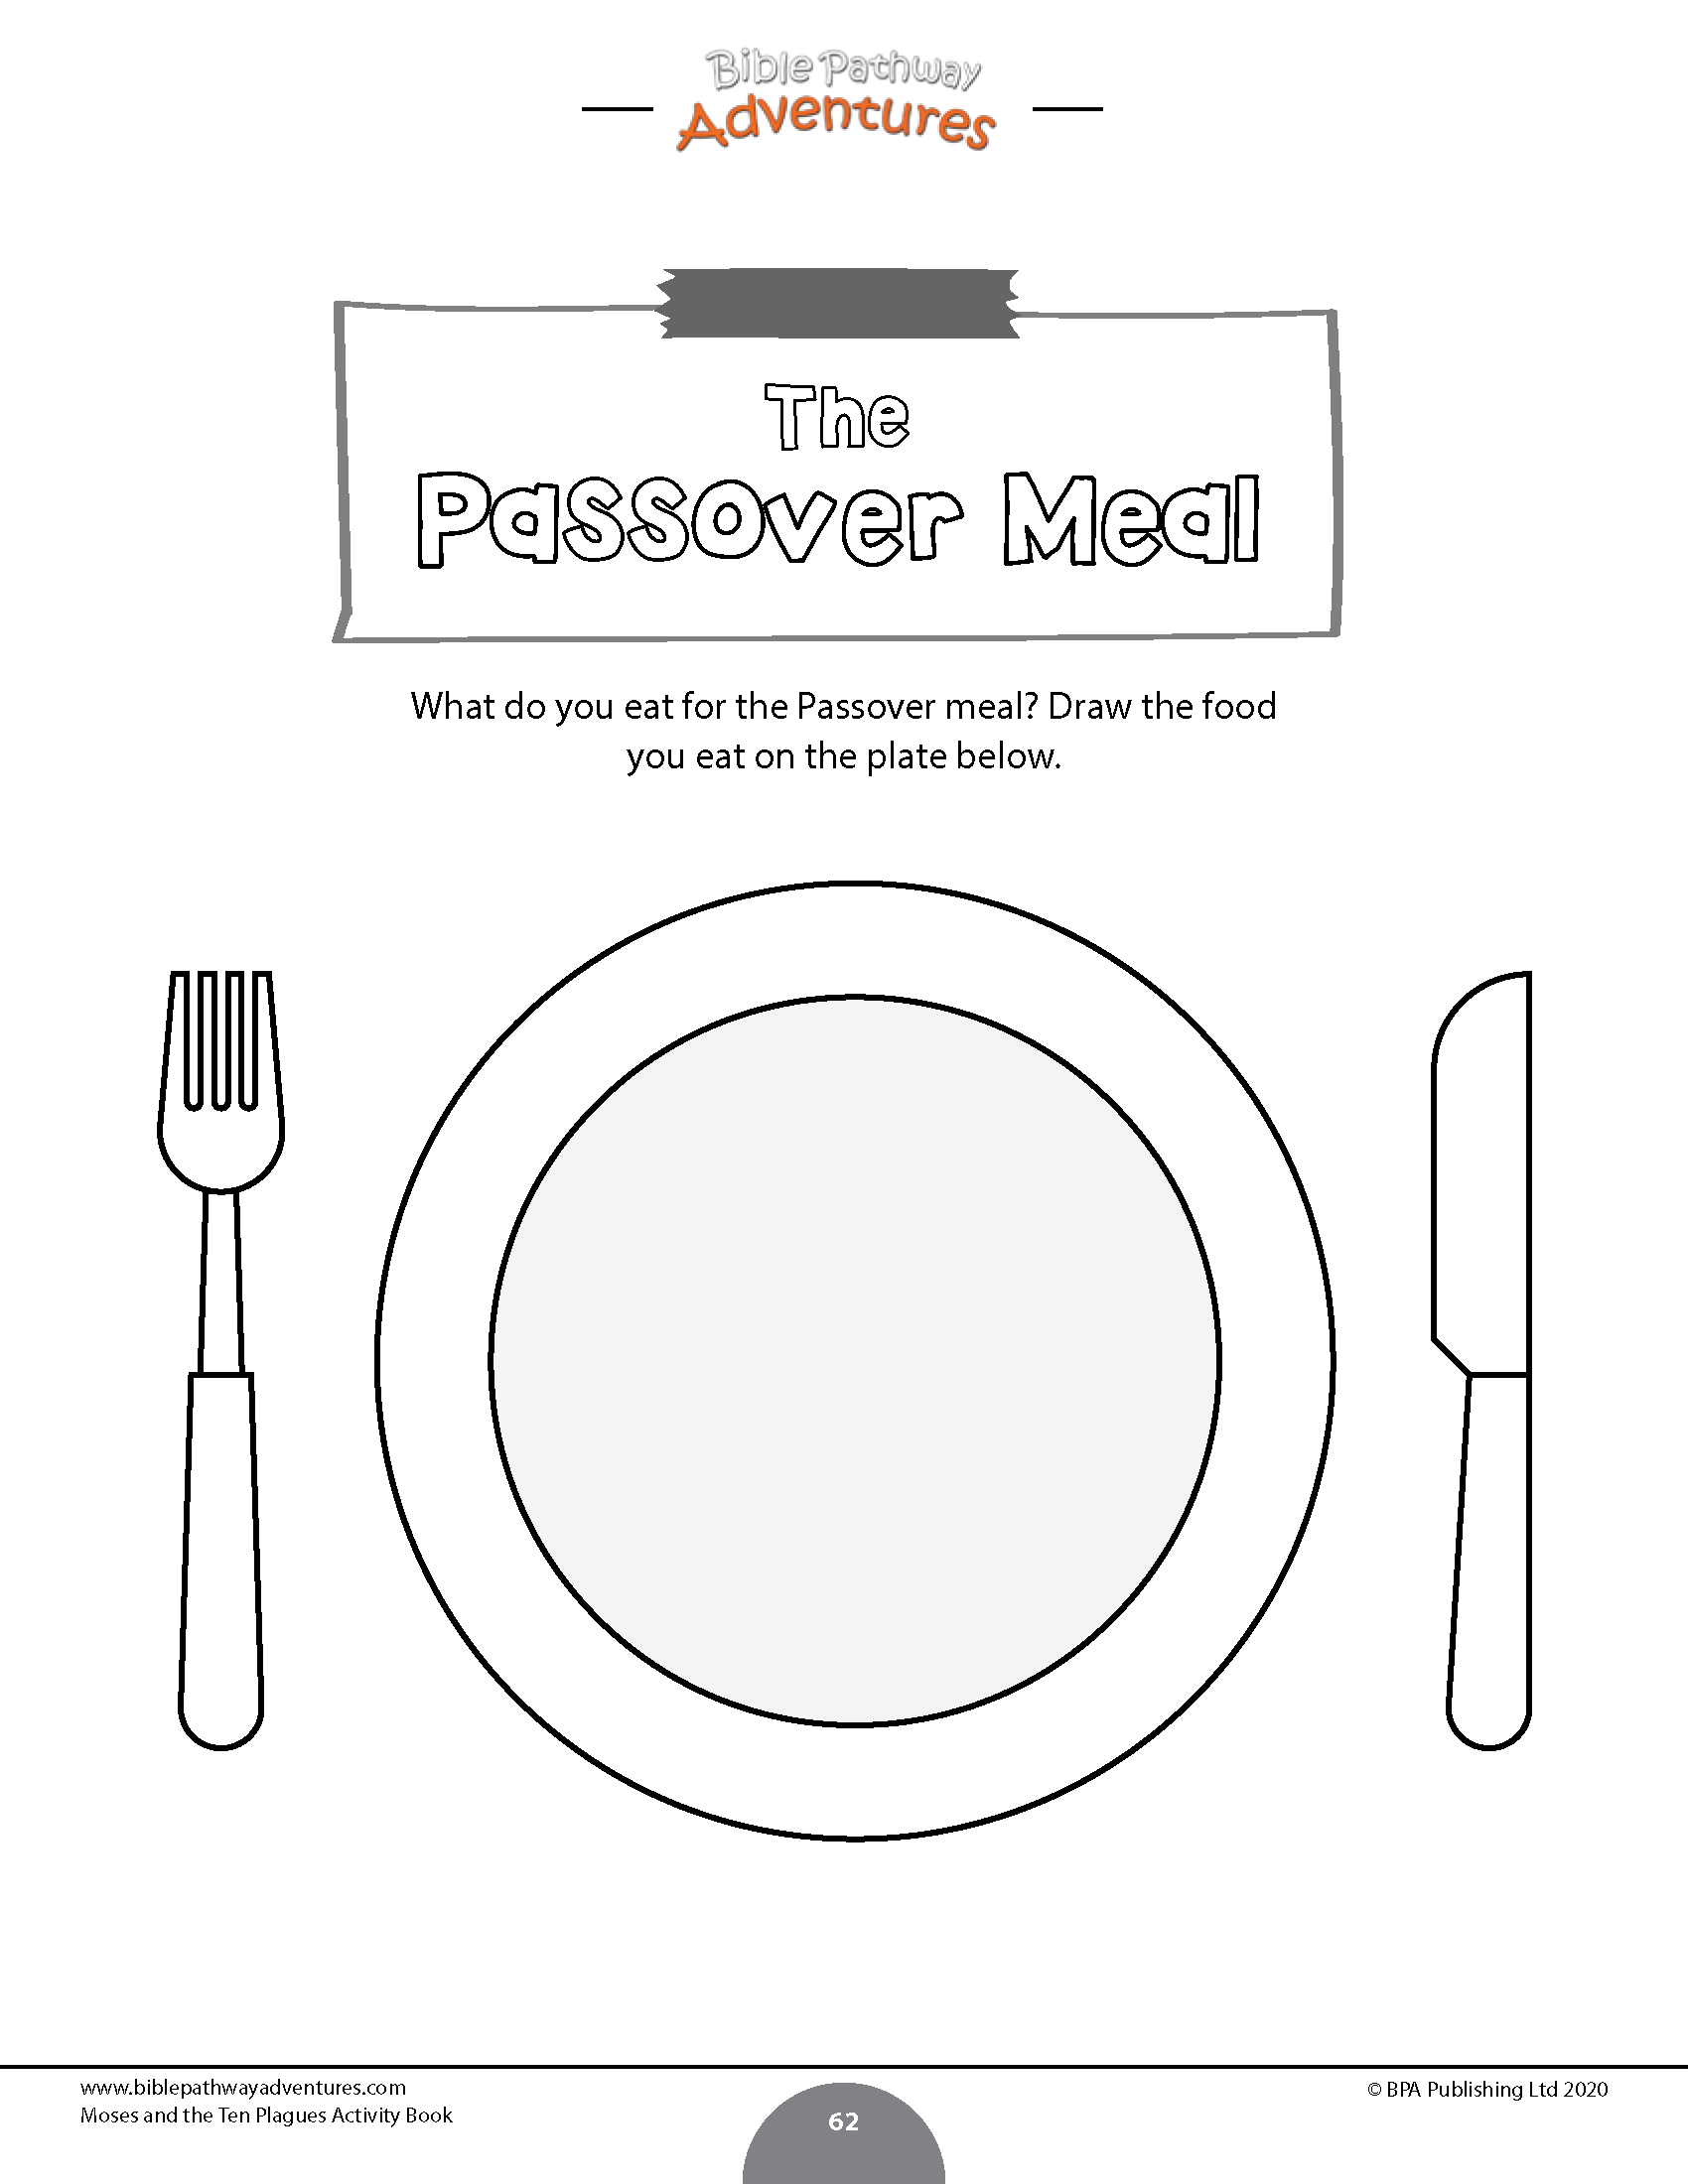 Moses And The Ten Plagues Activity Book Kids Ages 6 12 Book Activities Passover Worksheets Passover Lesson [ 2200 x 1700 Pixel ]